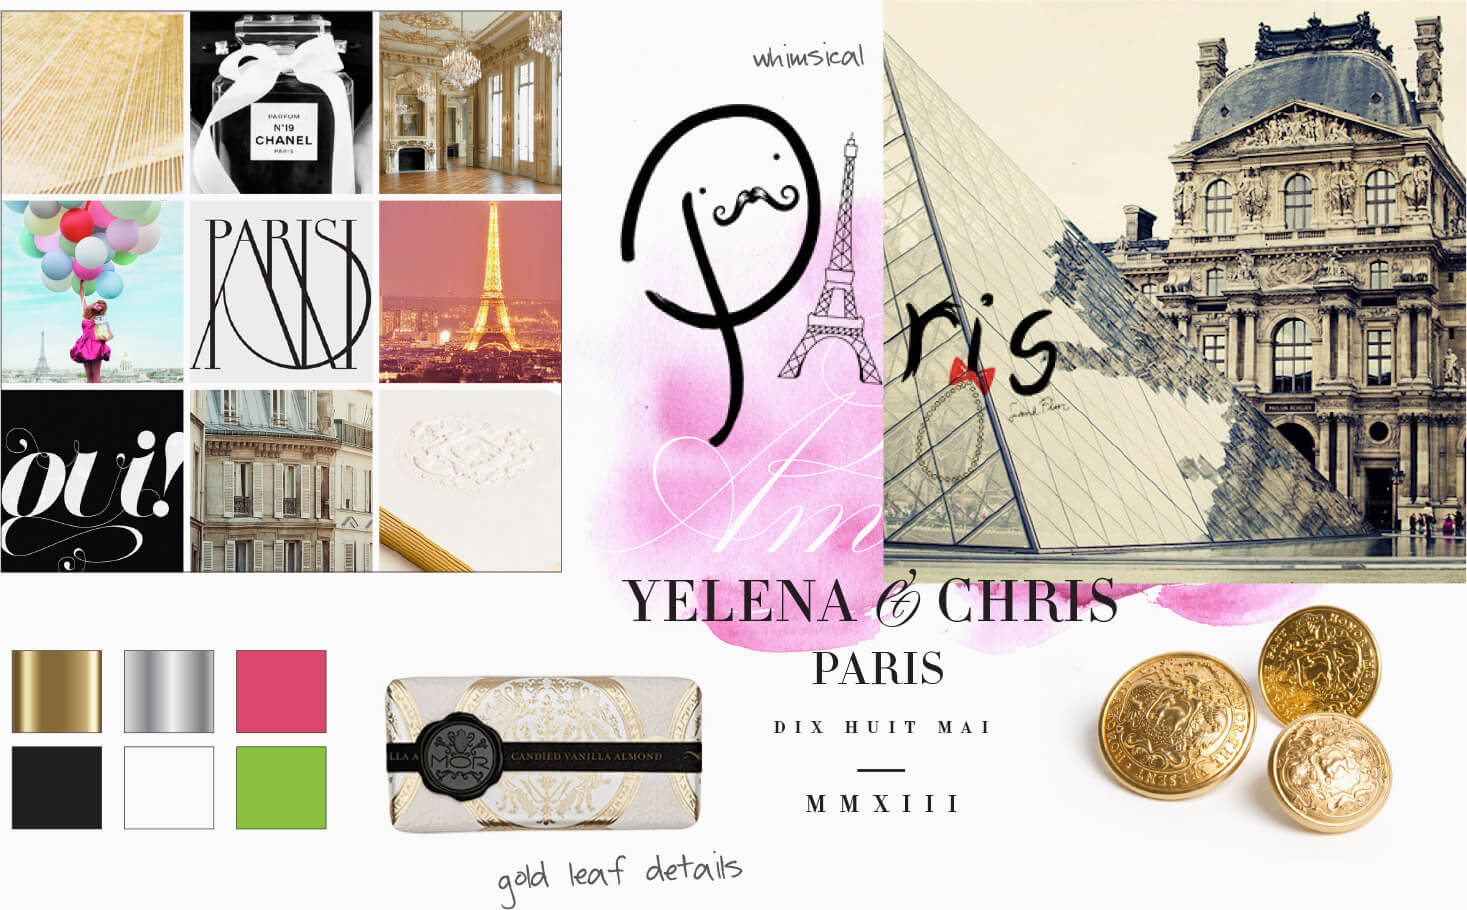 Louvre and contemporary packaging inspiration